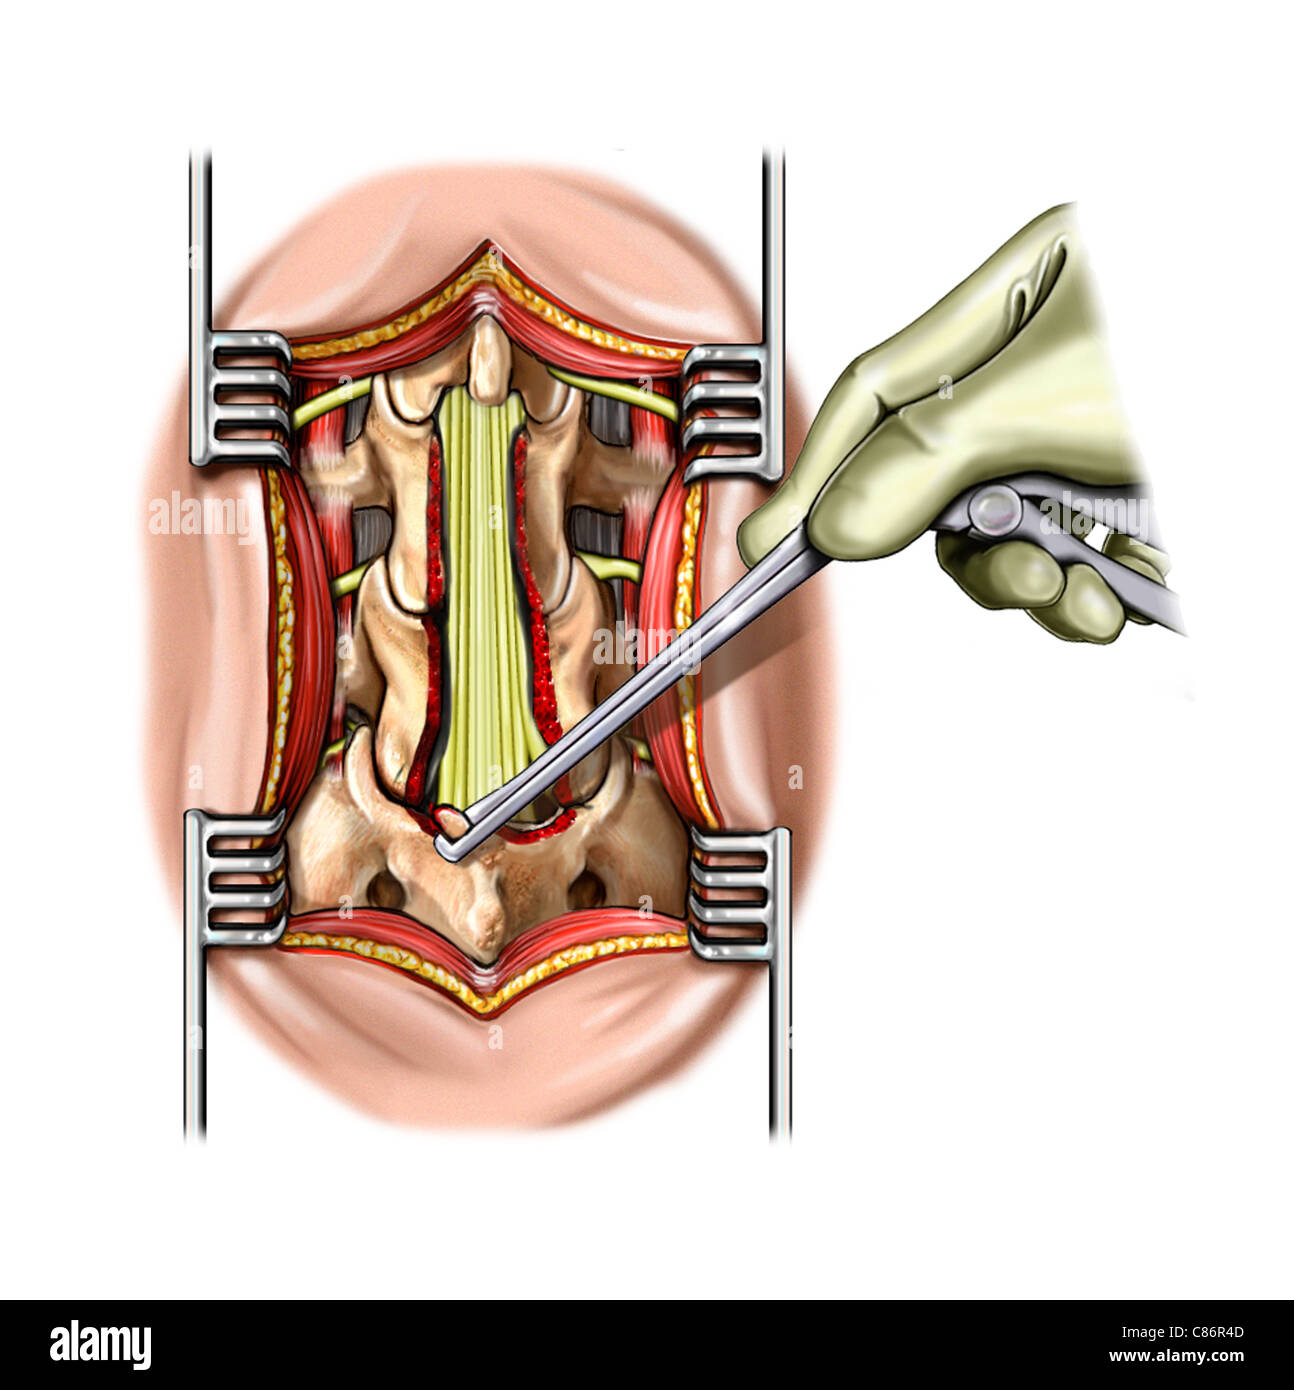 L4 and L5 Laminectomy Stock Photo